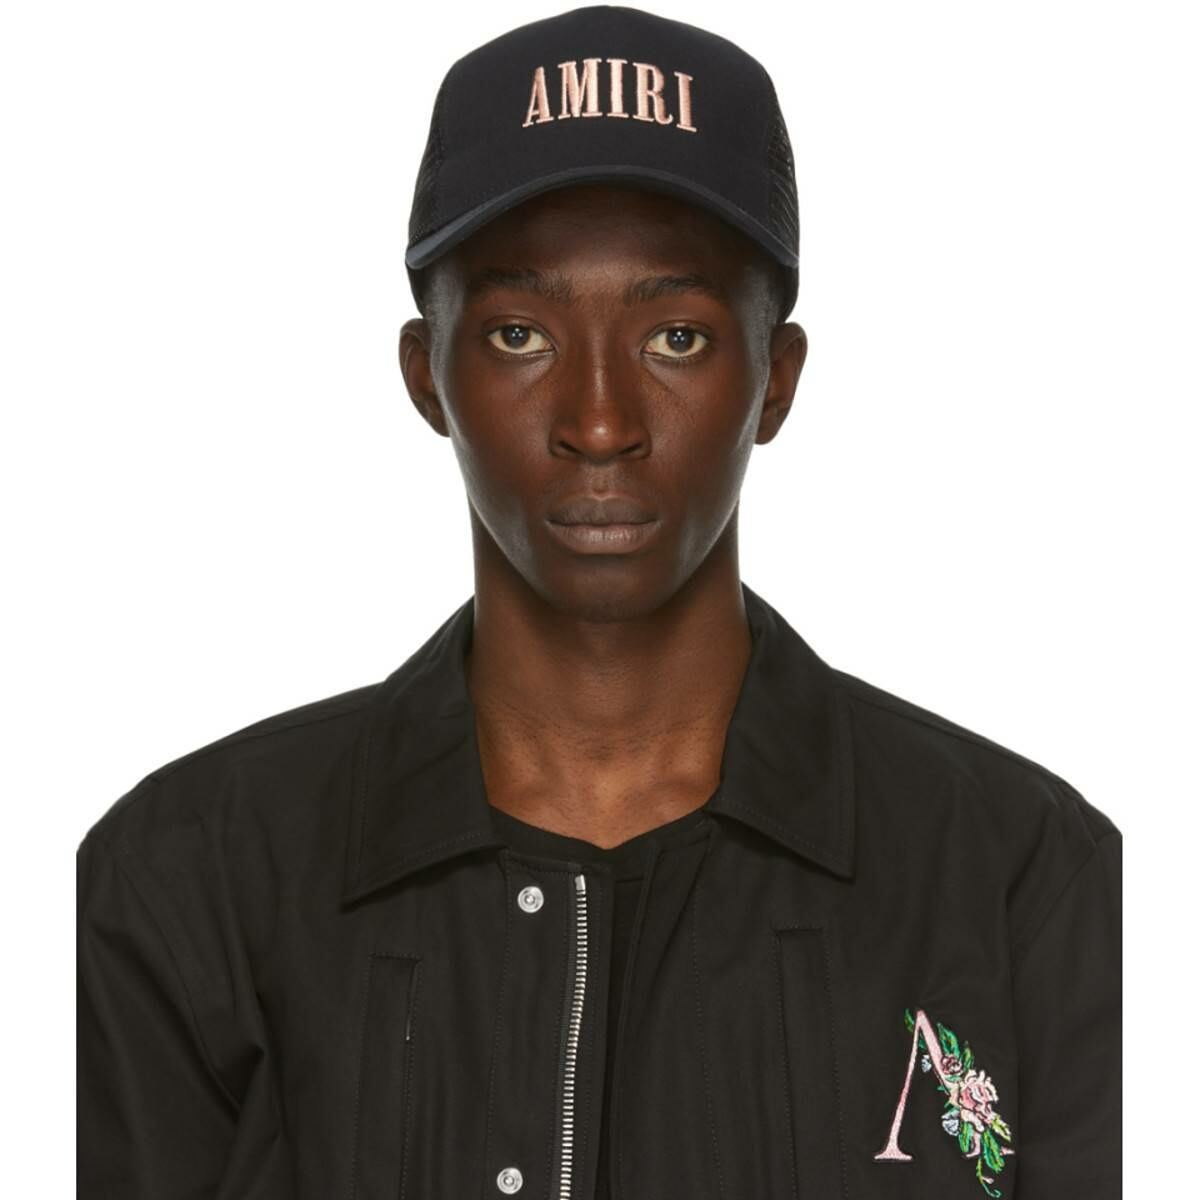 Amiri Black Logo Cap Ssense USA MEN Men ACCESSORIES Mens CAPS